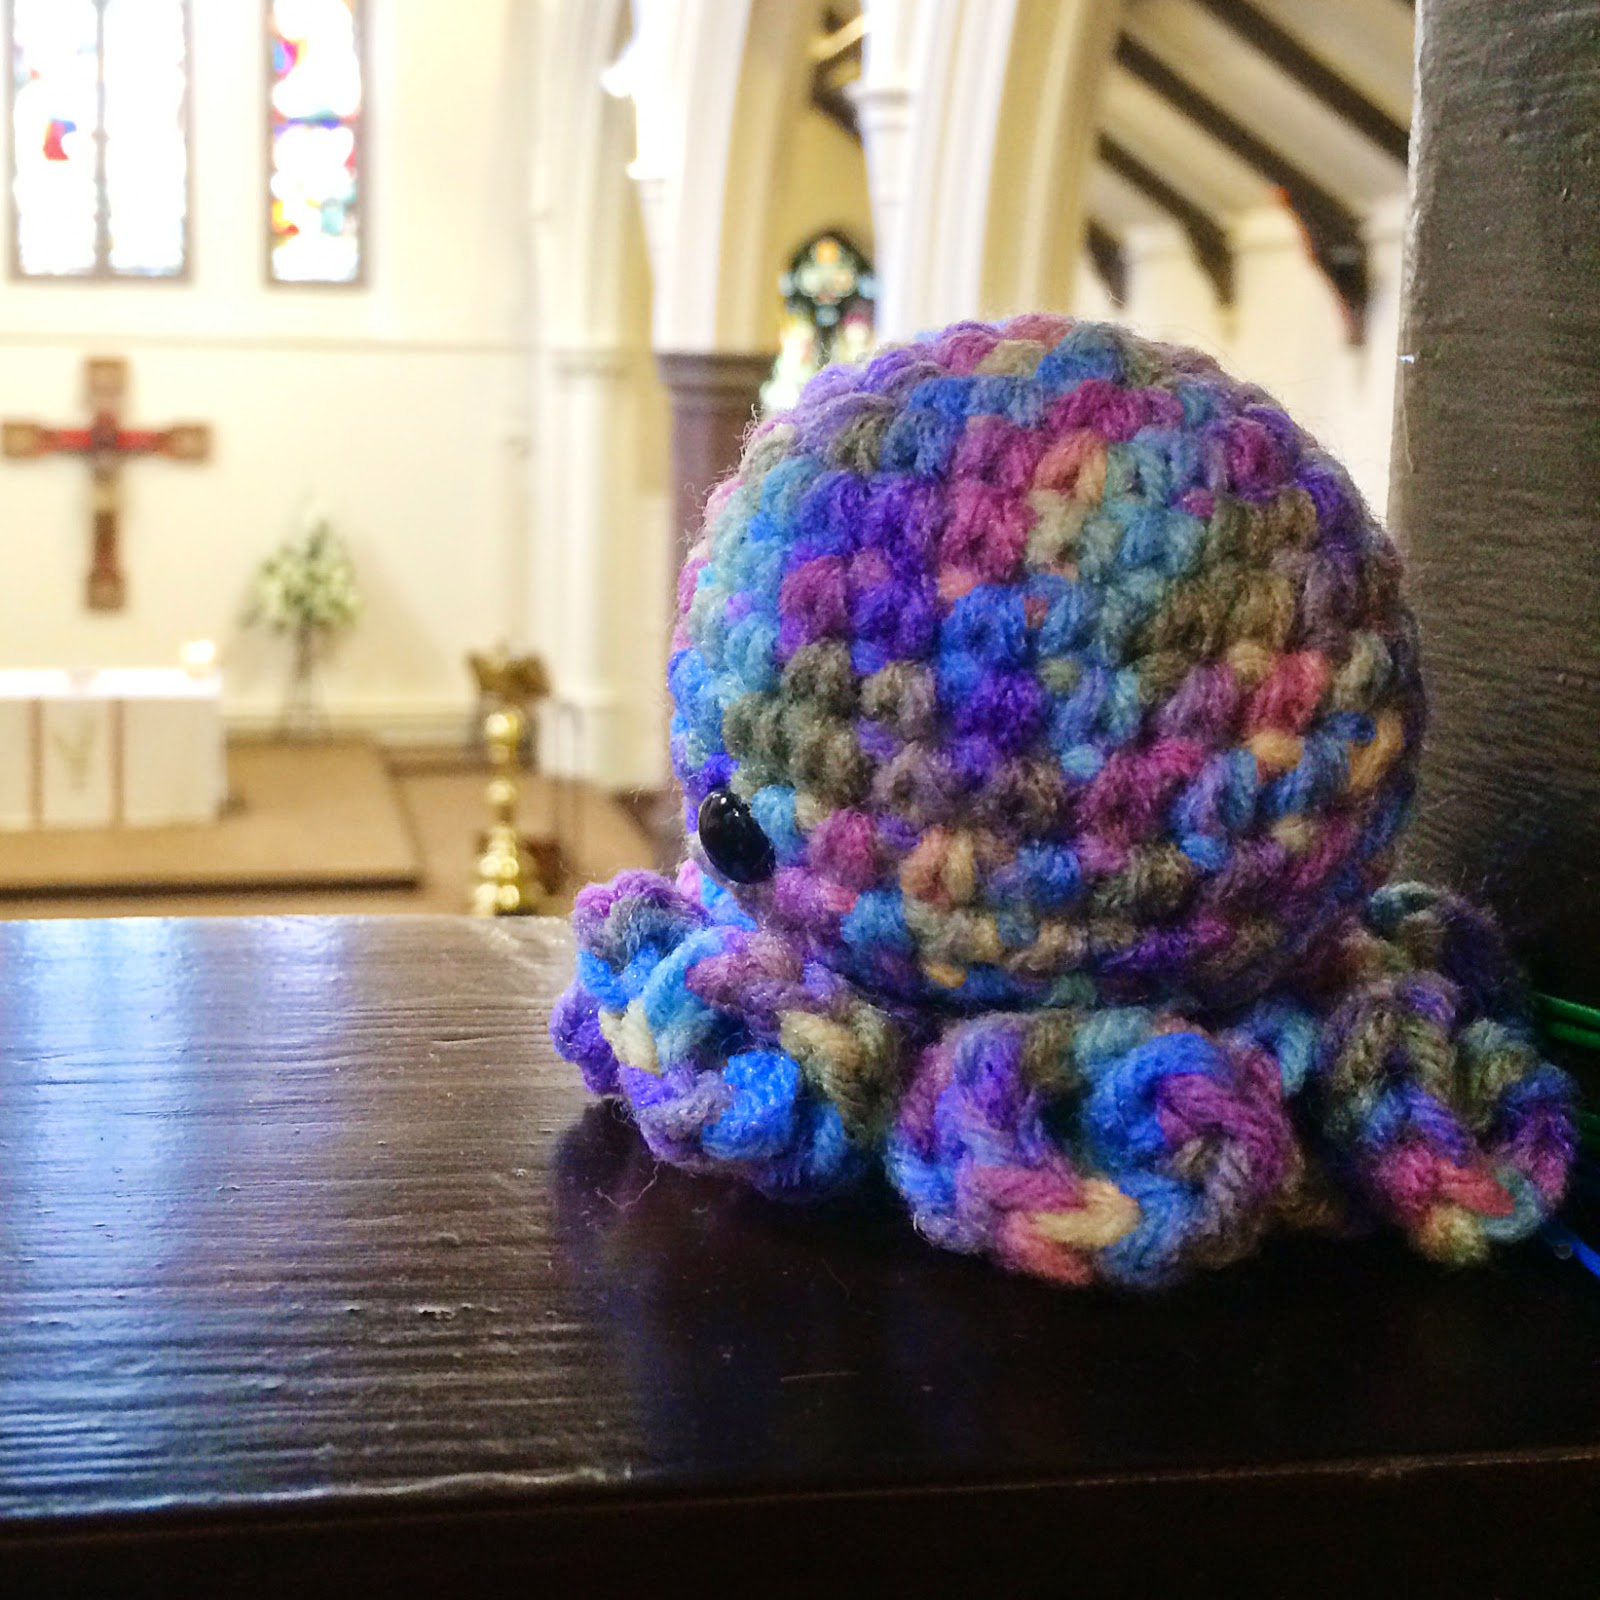 octopus amigurumi at church